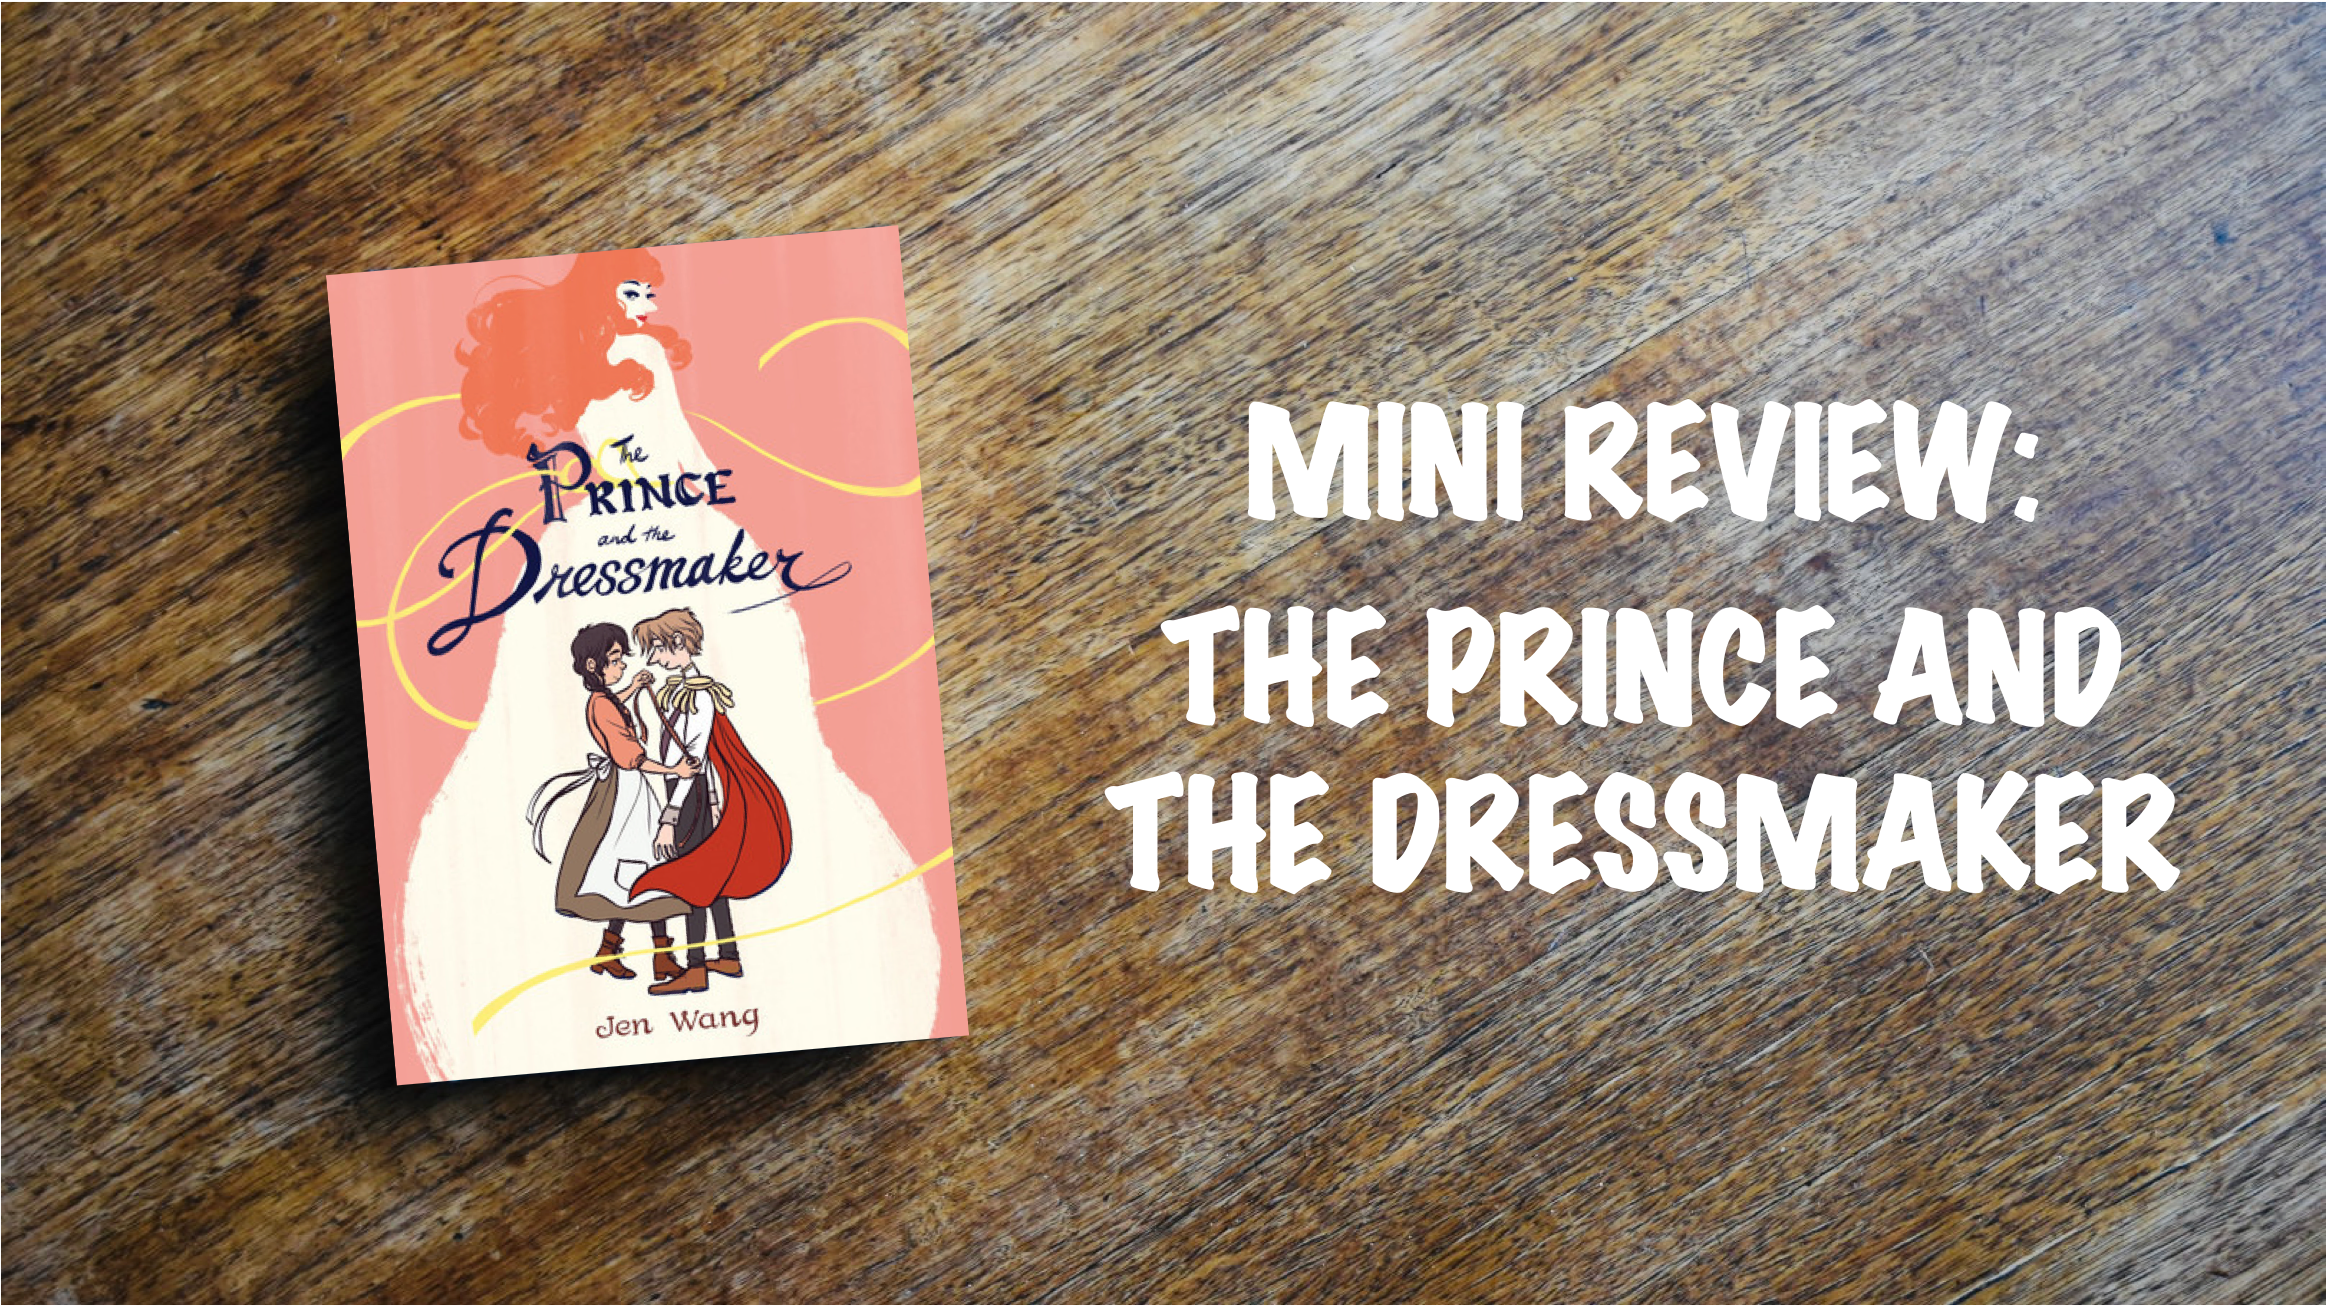 Book Review Banner: The Prince and the Dressmaker